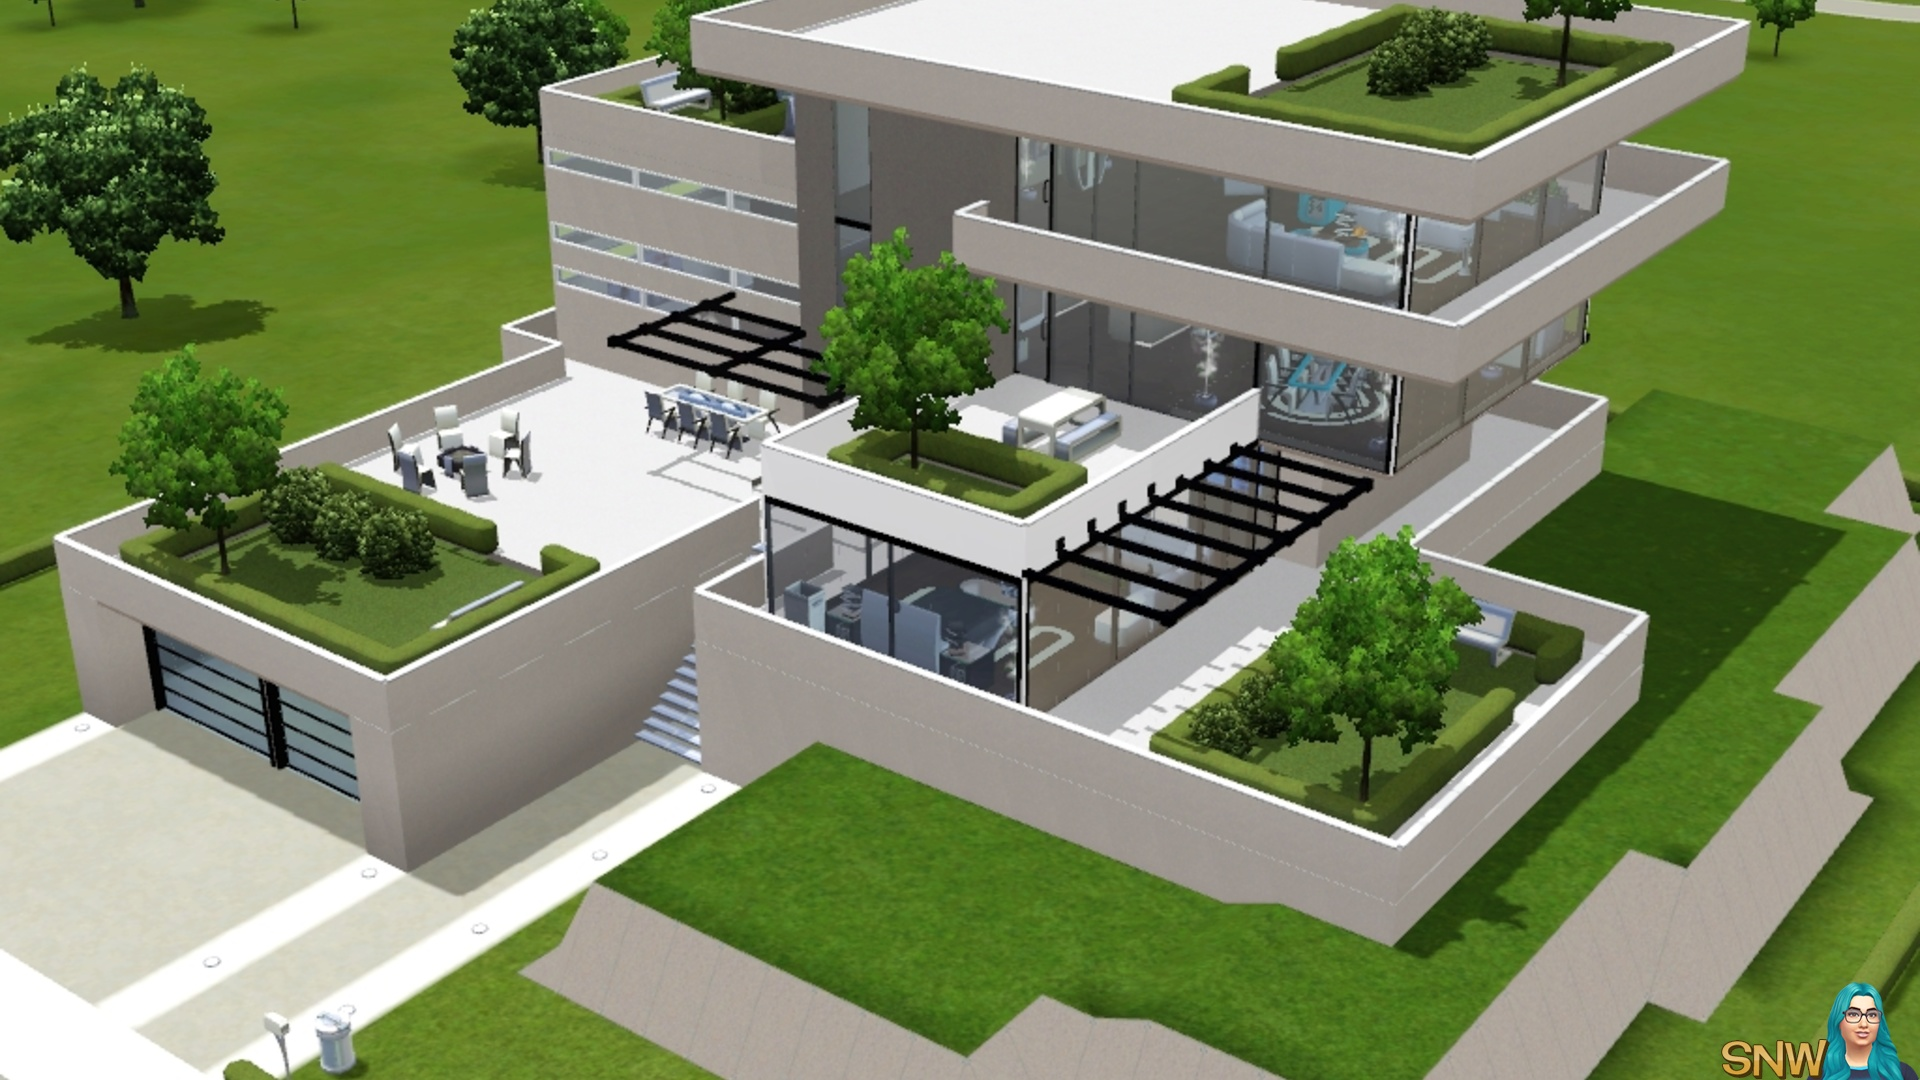 The sims 4: 10 awesome houses you can download!